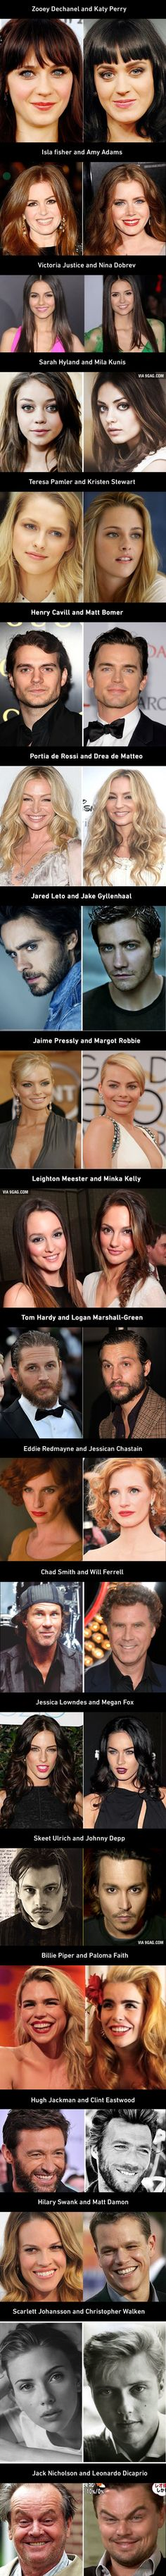 40 Celebrities Who Are So Incredibly Similar That They Look Like Doppelgangers - 9GAG